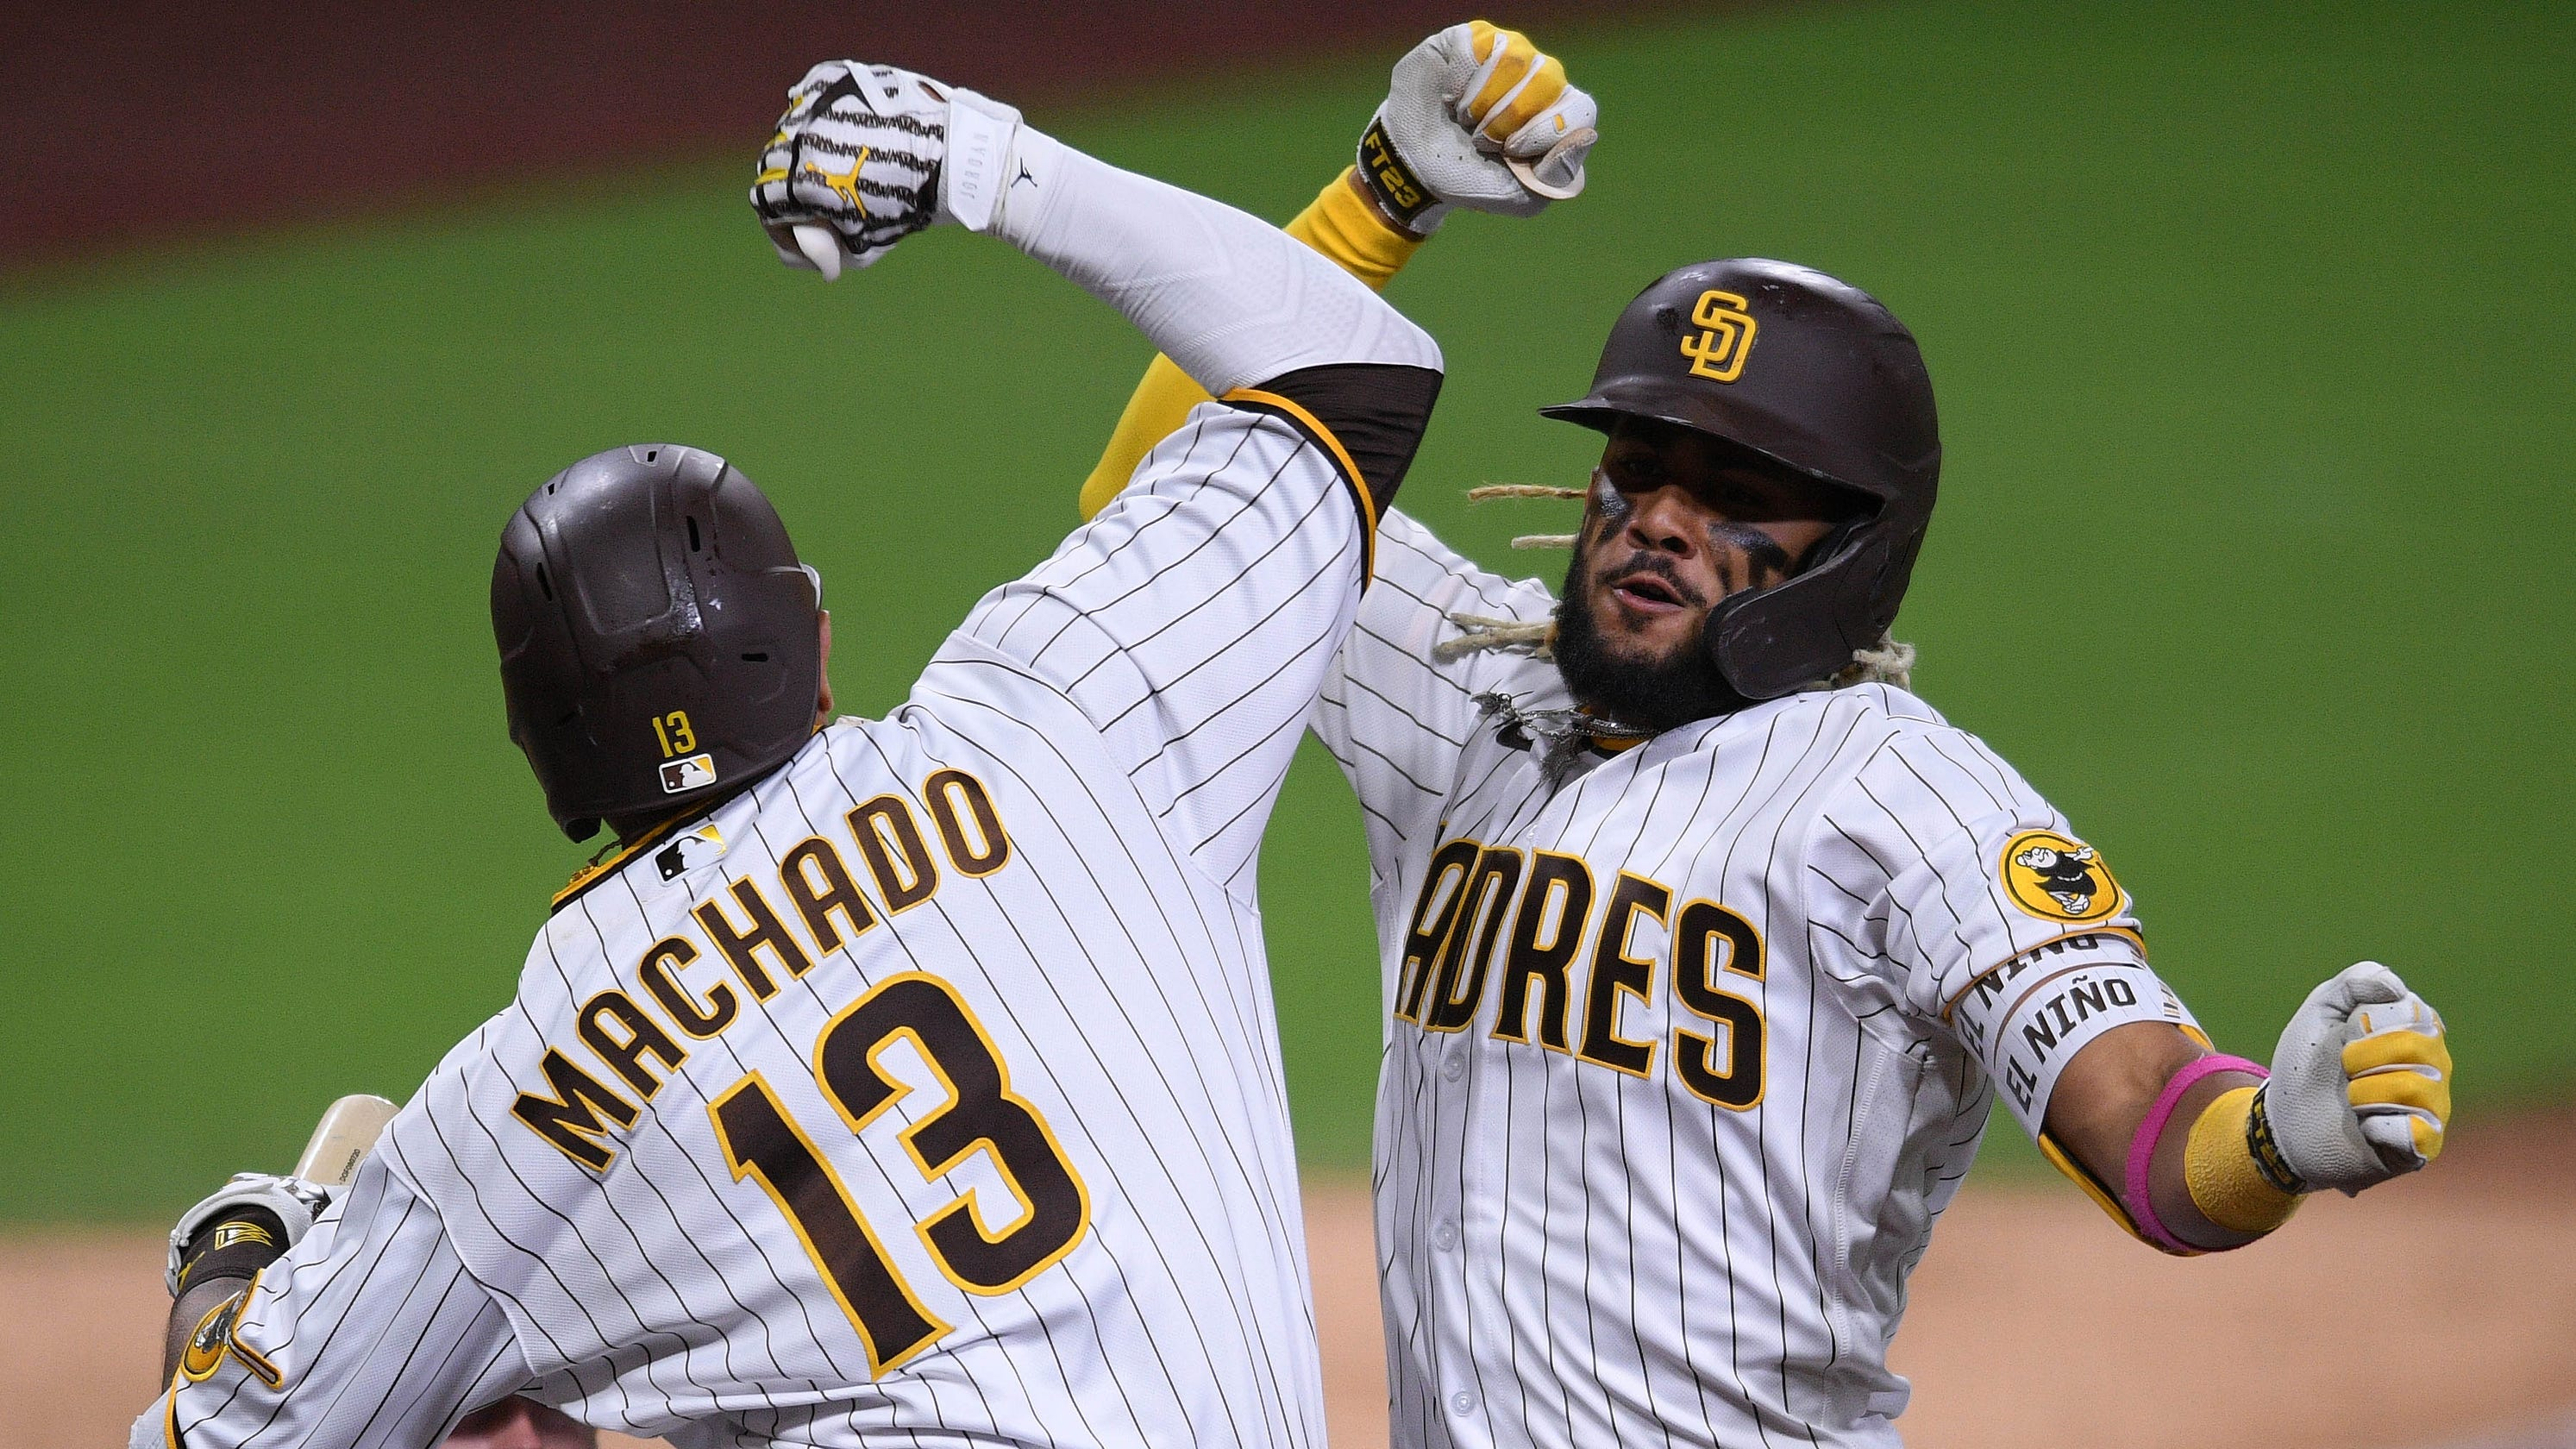 Fernando Tatis Jr. electric, Padres win to force Game 3 vs. Cardinals